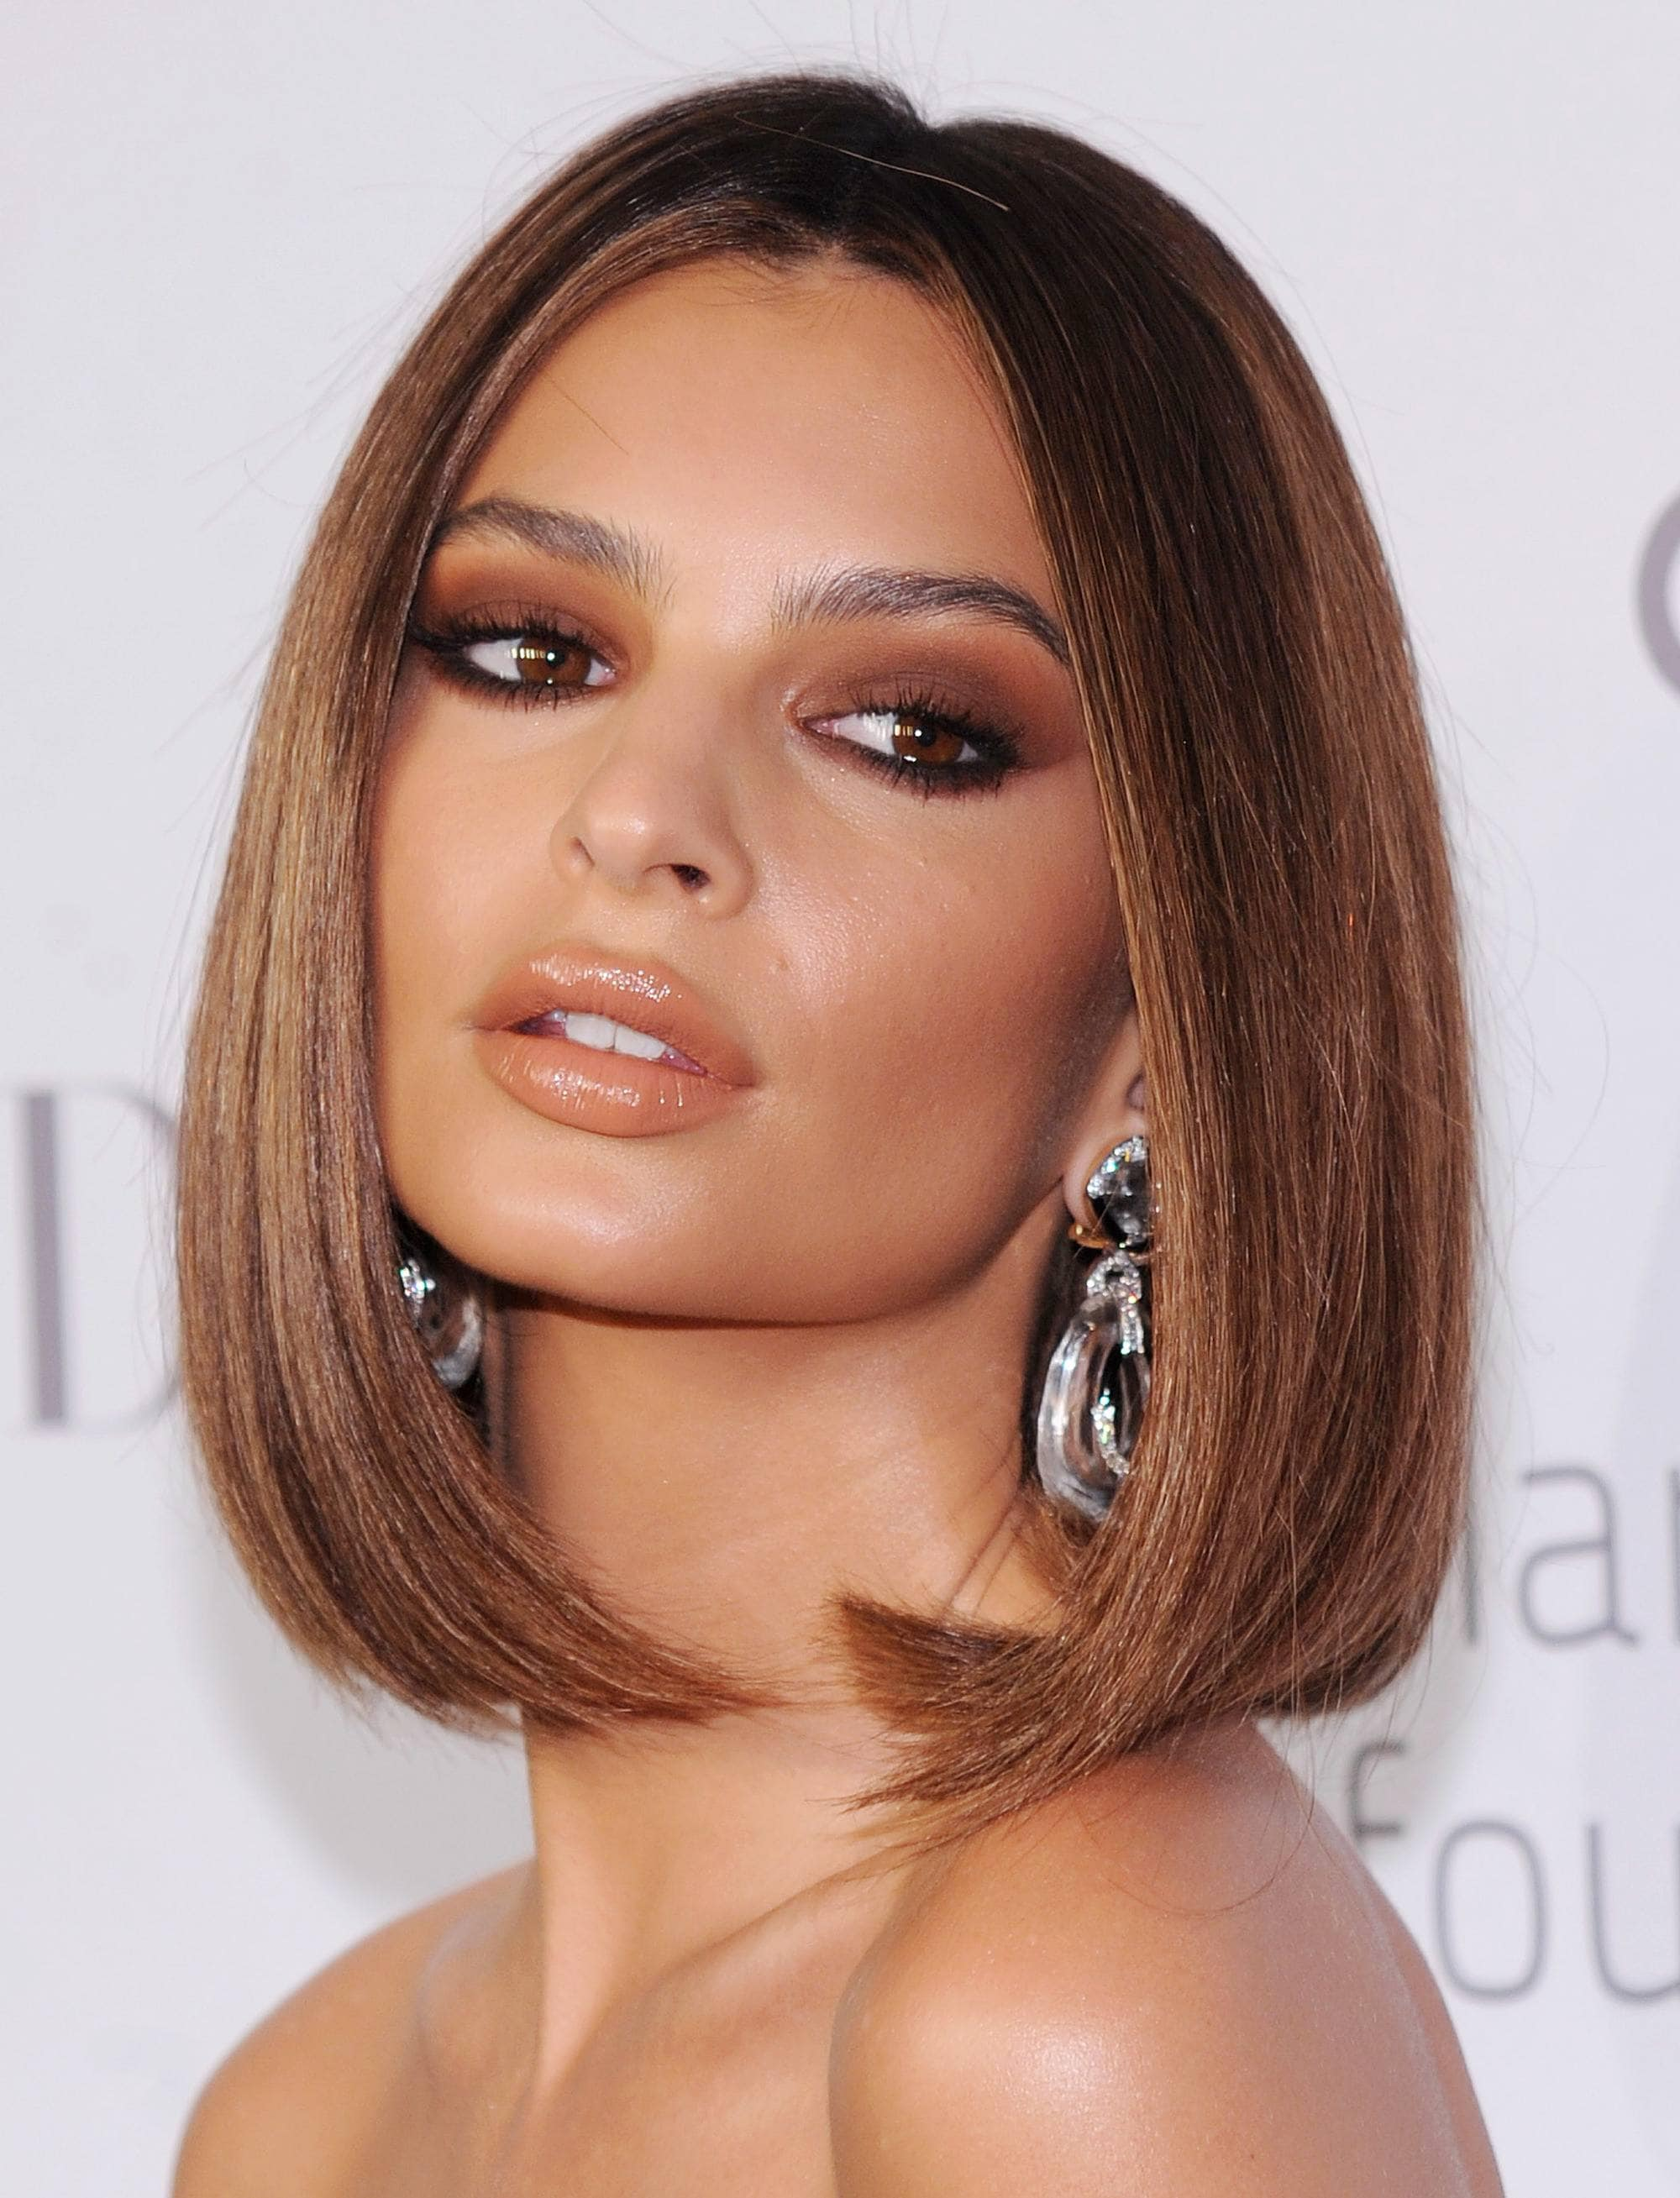 Celebrity bob hairstyles: Emily Ratajkowski with long caramel bob curled under, on the red carpet